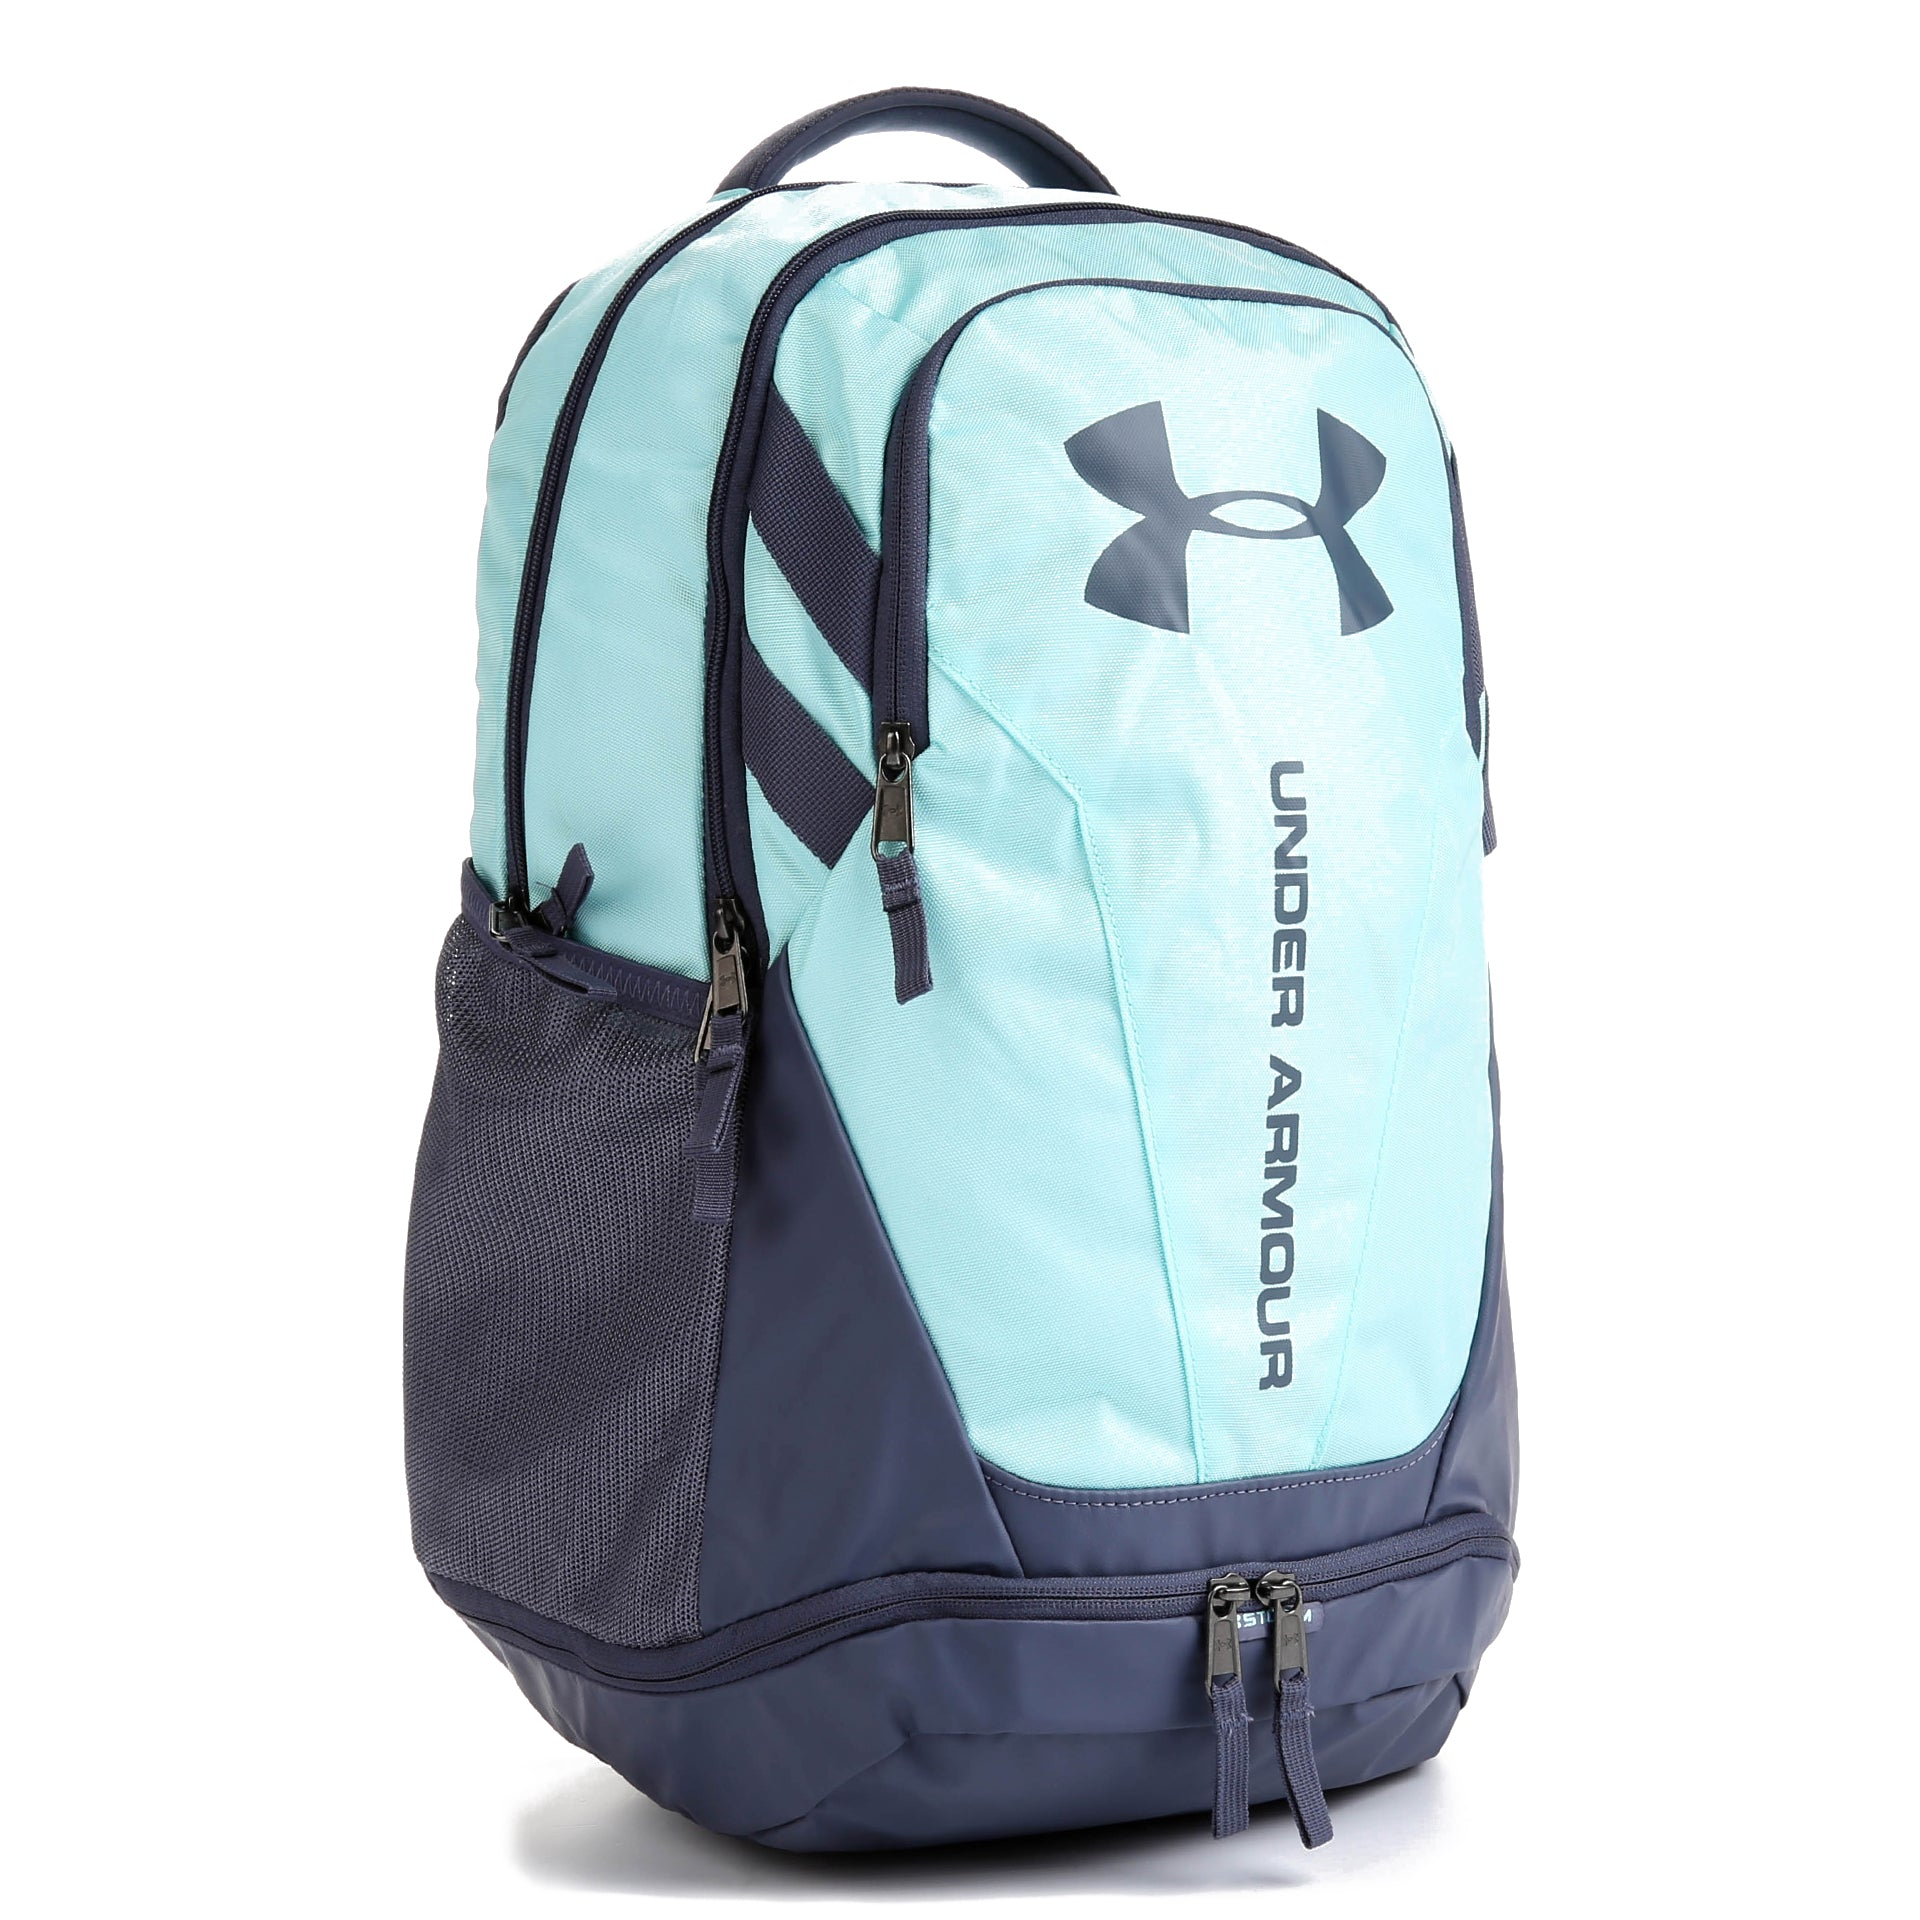 new under armour backpacks